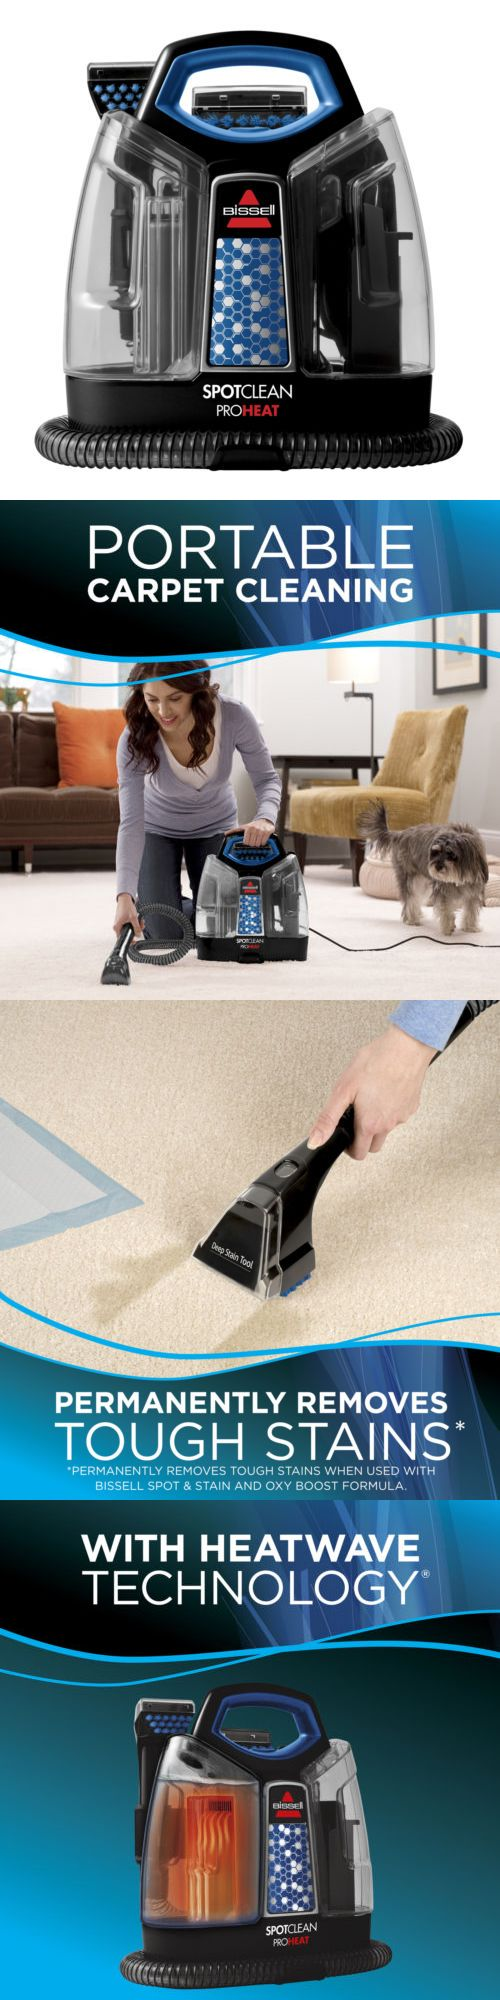 Carpet Shampooers 177746: Bissell® Spotclean Proheat Portable Carpet Cleaner   5207F New! -> BUY IT NOW ONLY: $99.99 on eBay!